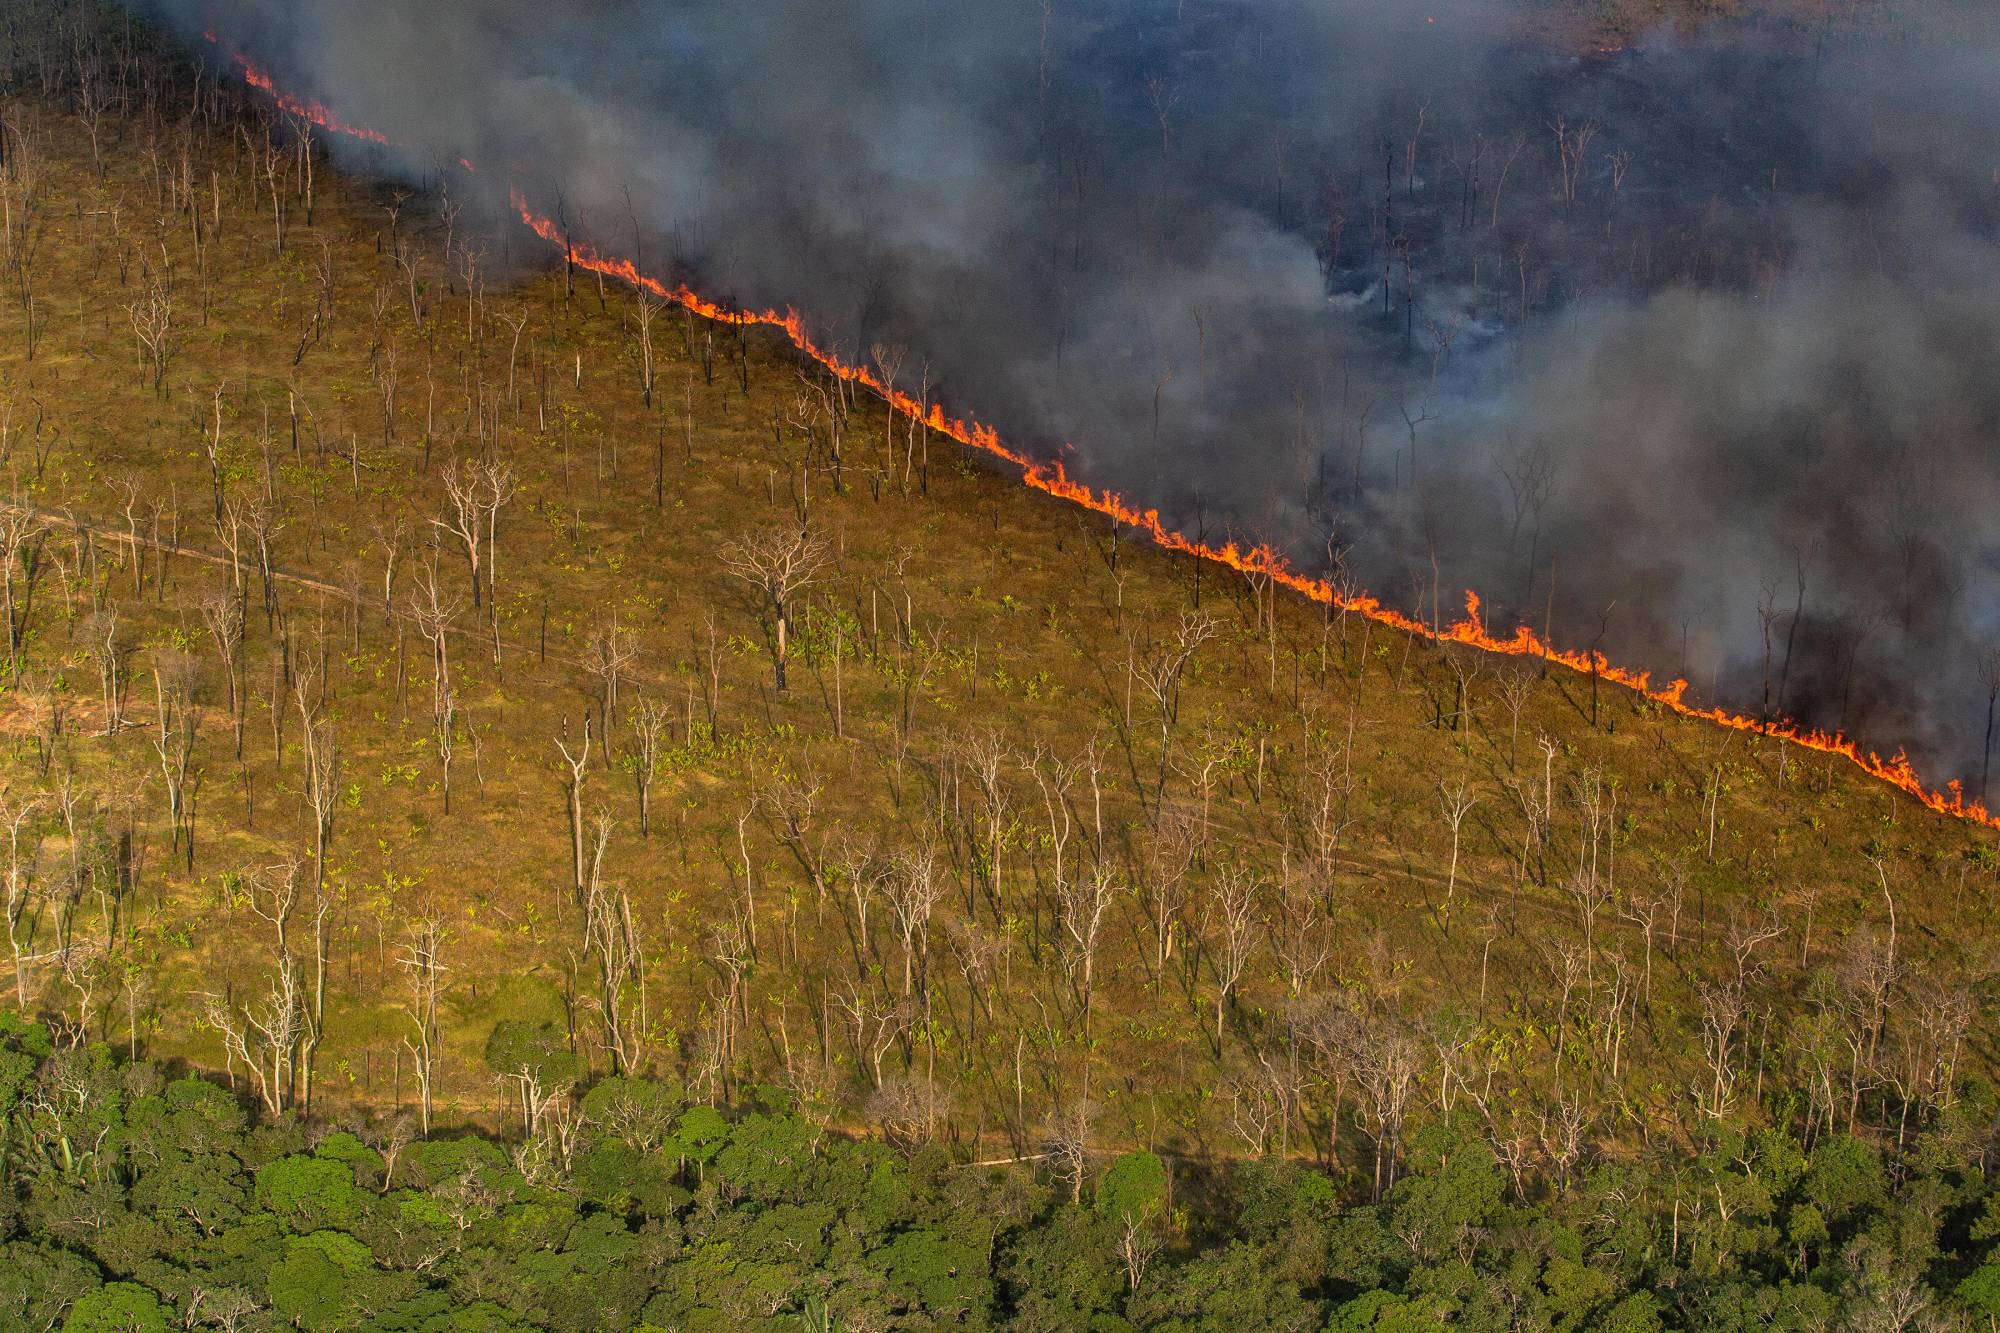 A stretch of the Amazon rainforest is deliberately burned for cattle pasture in Brazil's Rodonia State, Sept. 8, 2019. (Victor Moriyama/The New York Times)